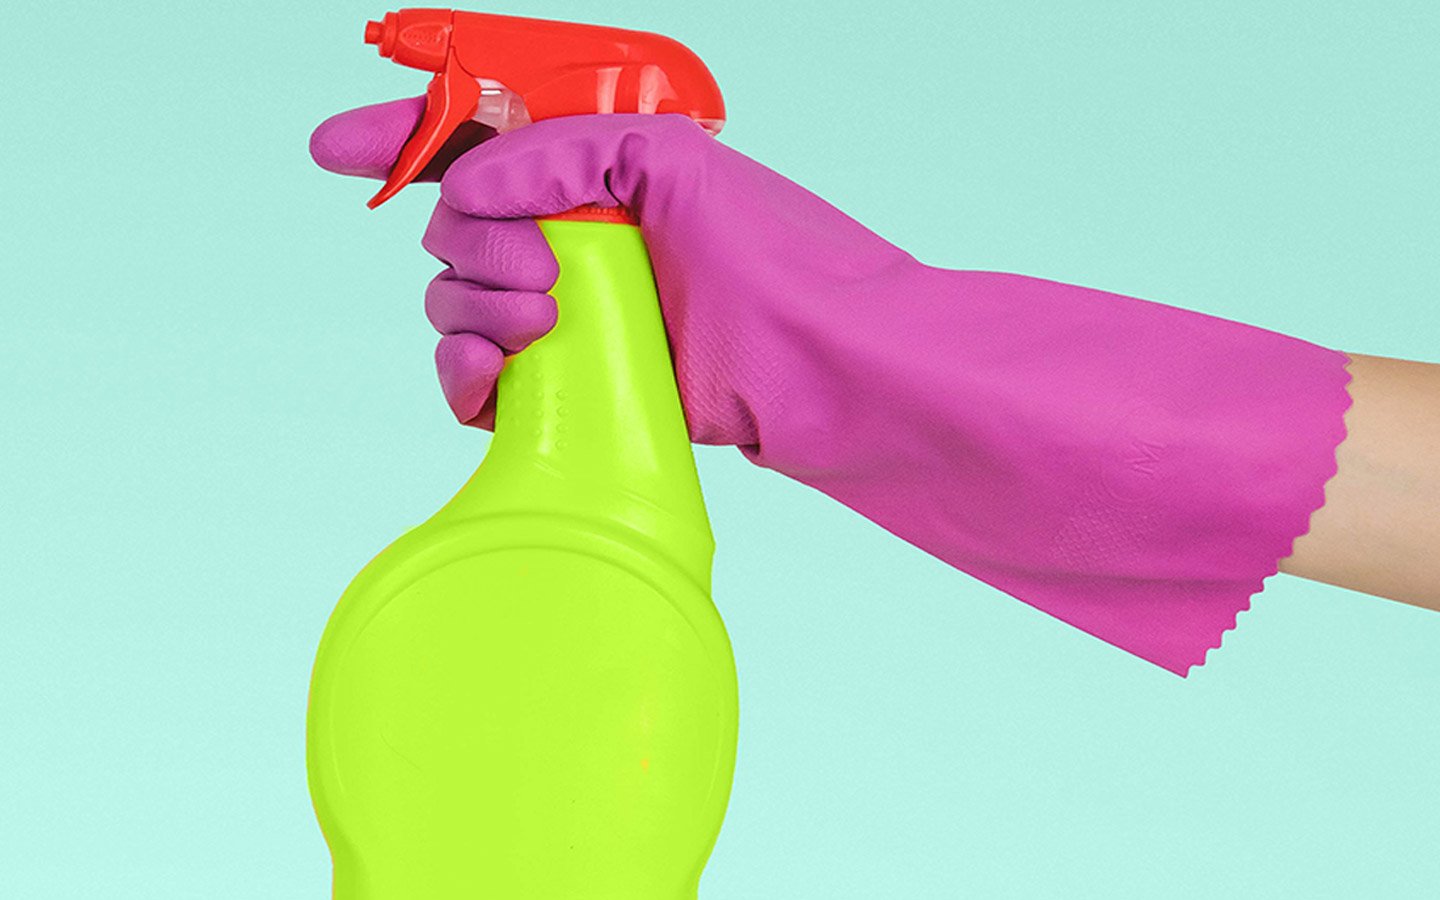 Eco-friendly cleaning products to use in the kitchen